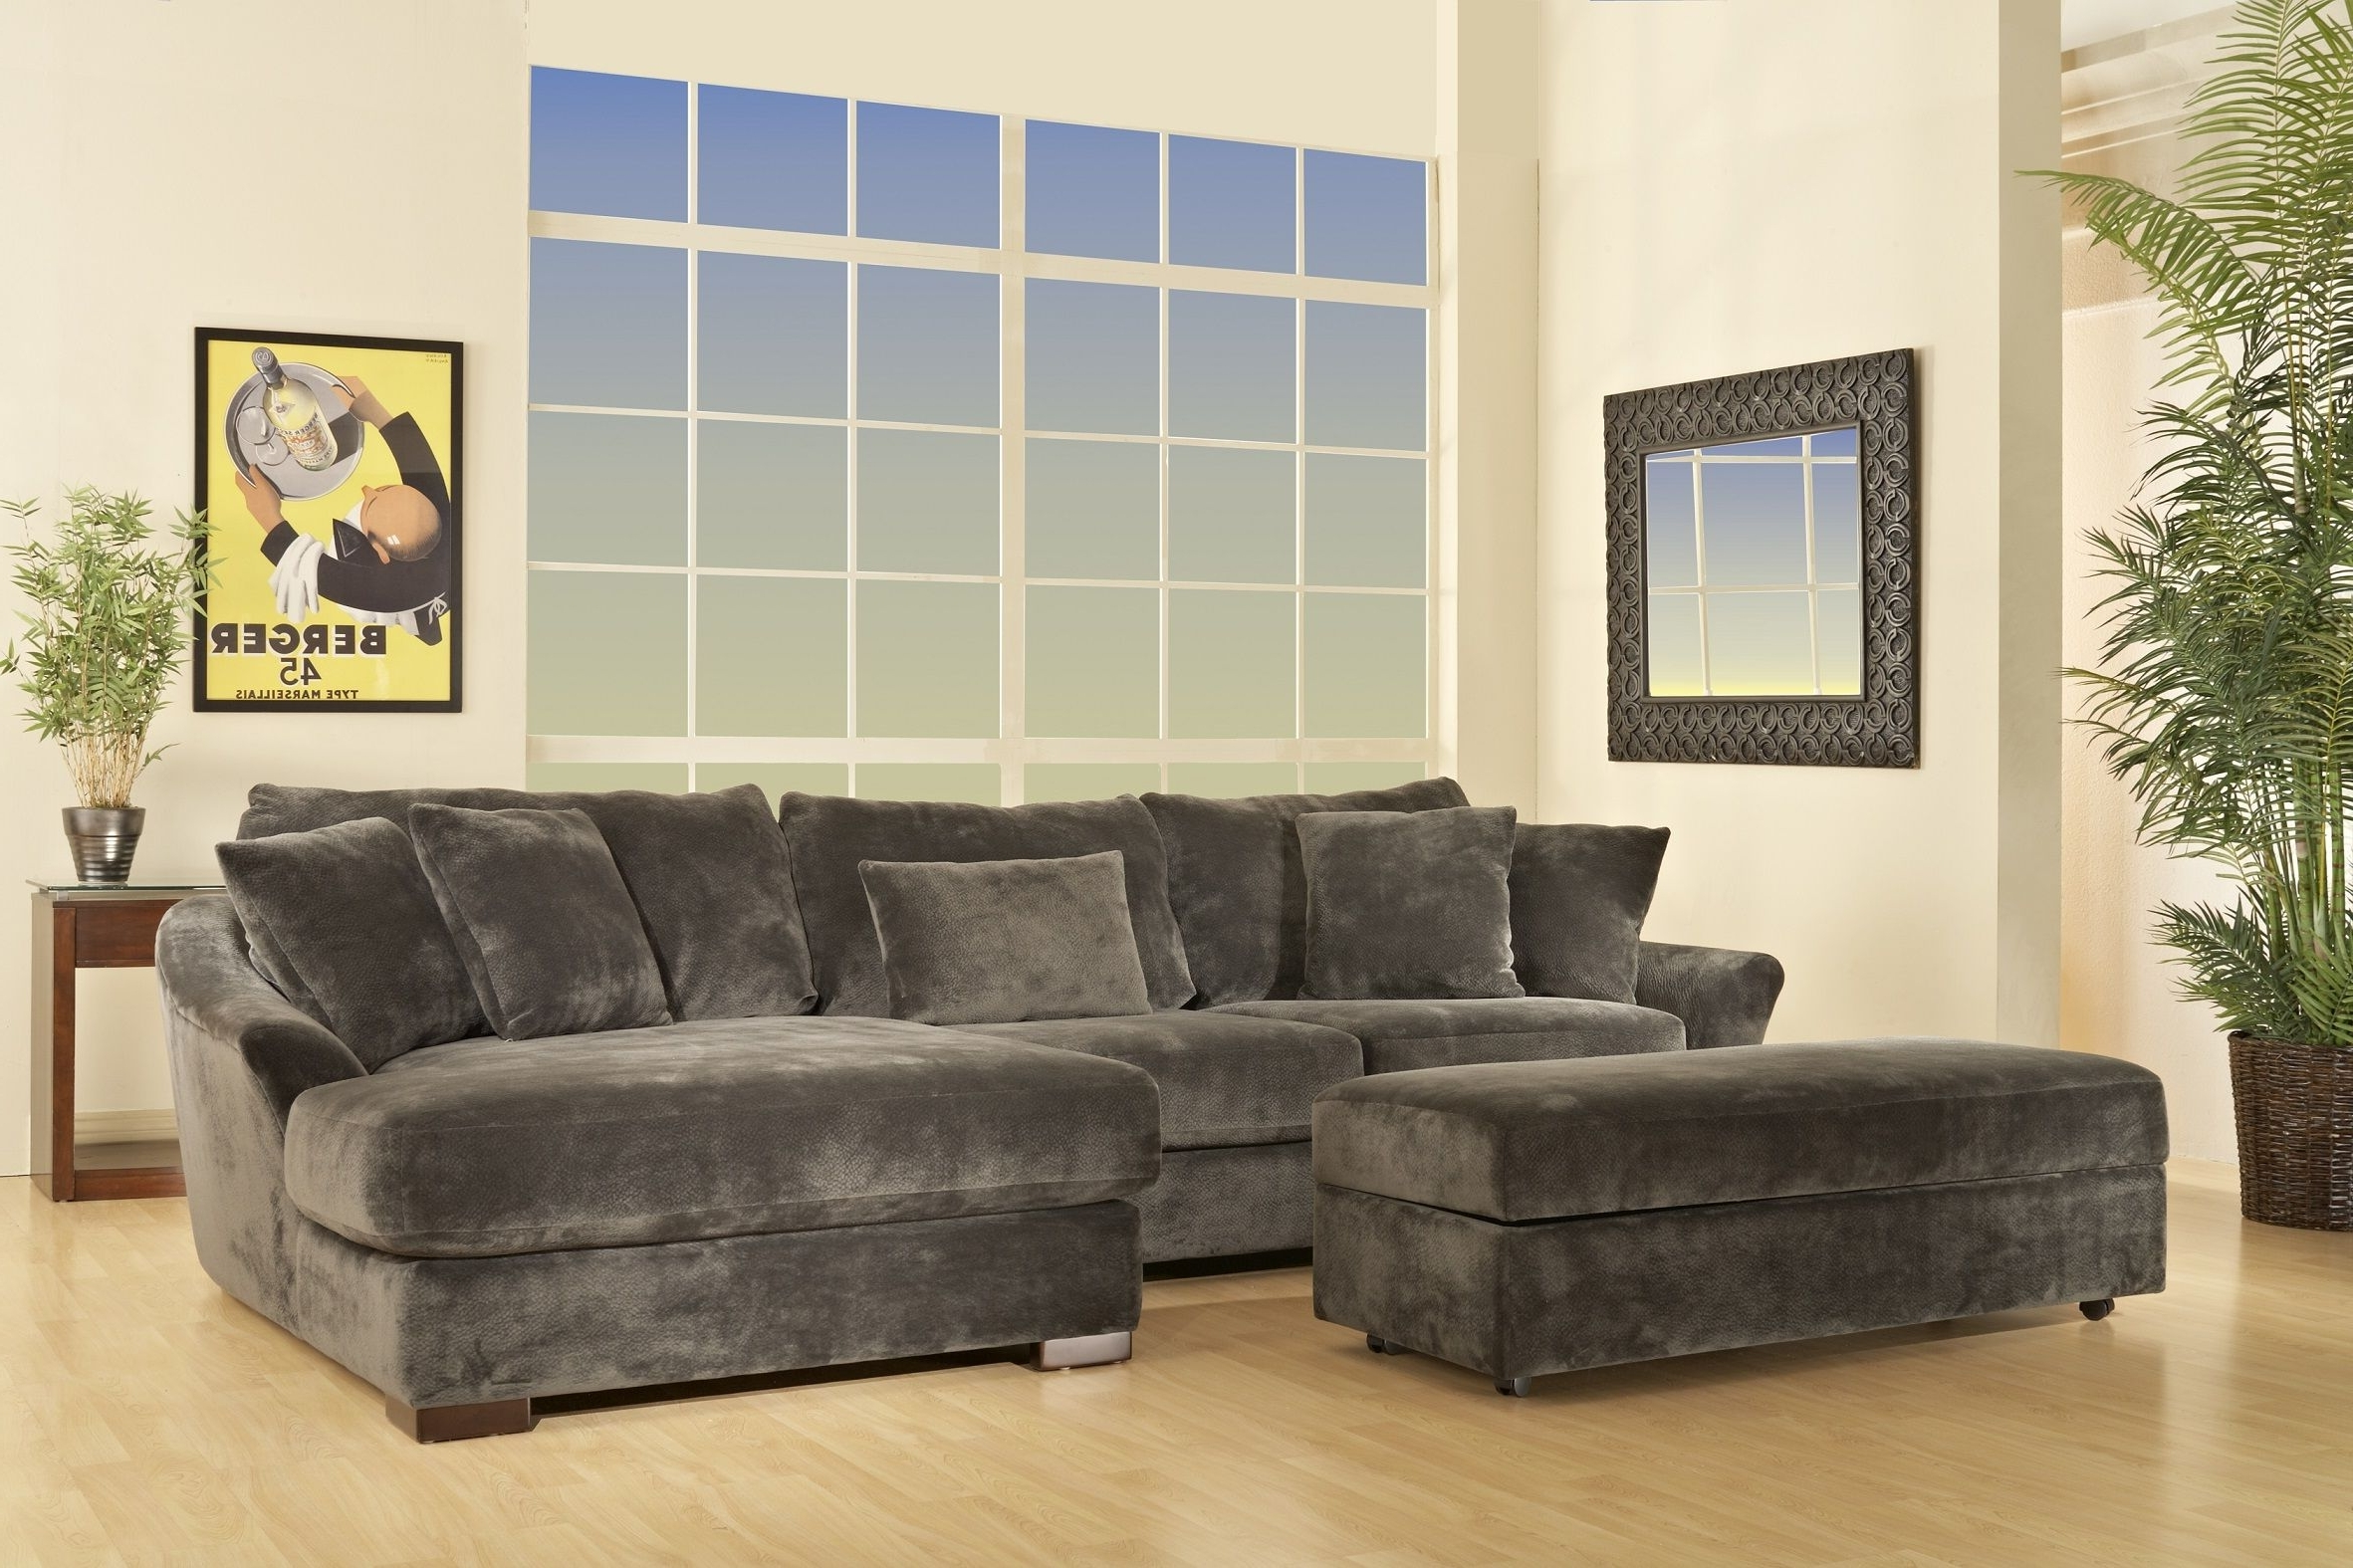 Famous Champion Brown Fabric 4 Peice Oversized Chaise Sectional Set For El Paso Sectional Sofas (View 7 of 20)